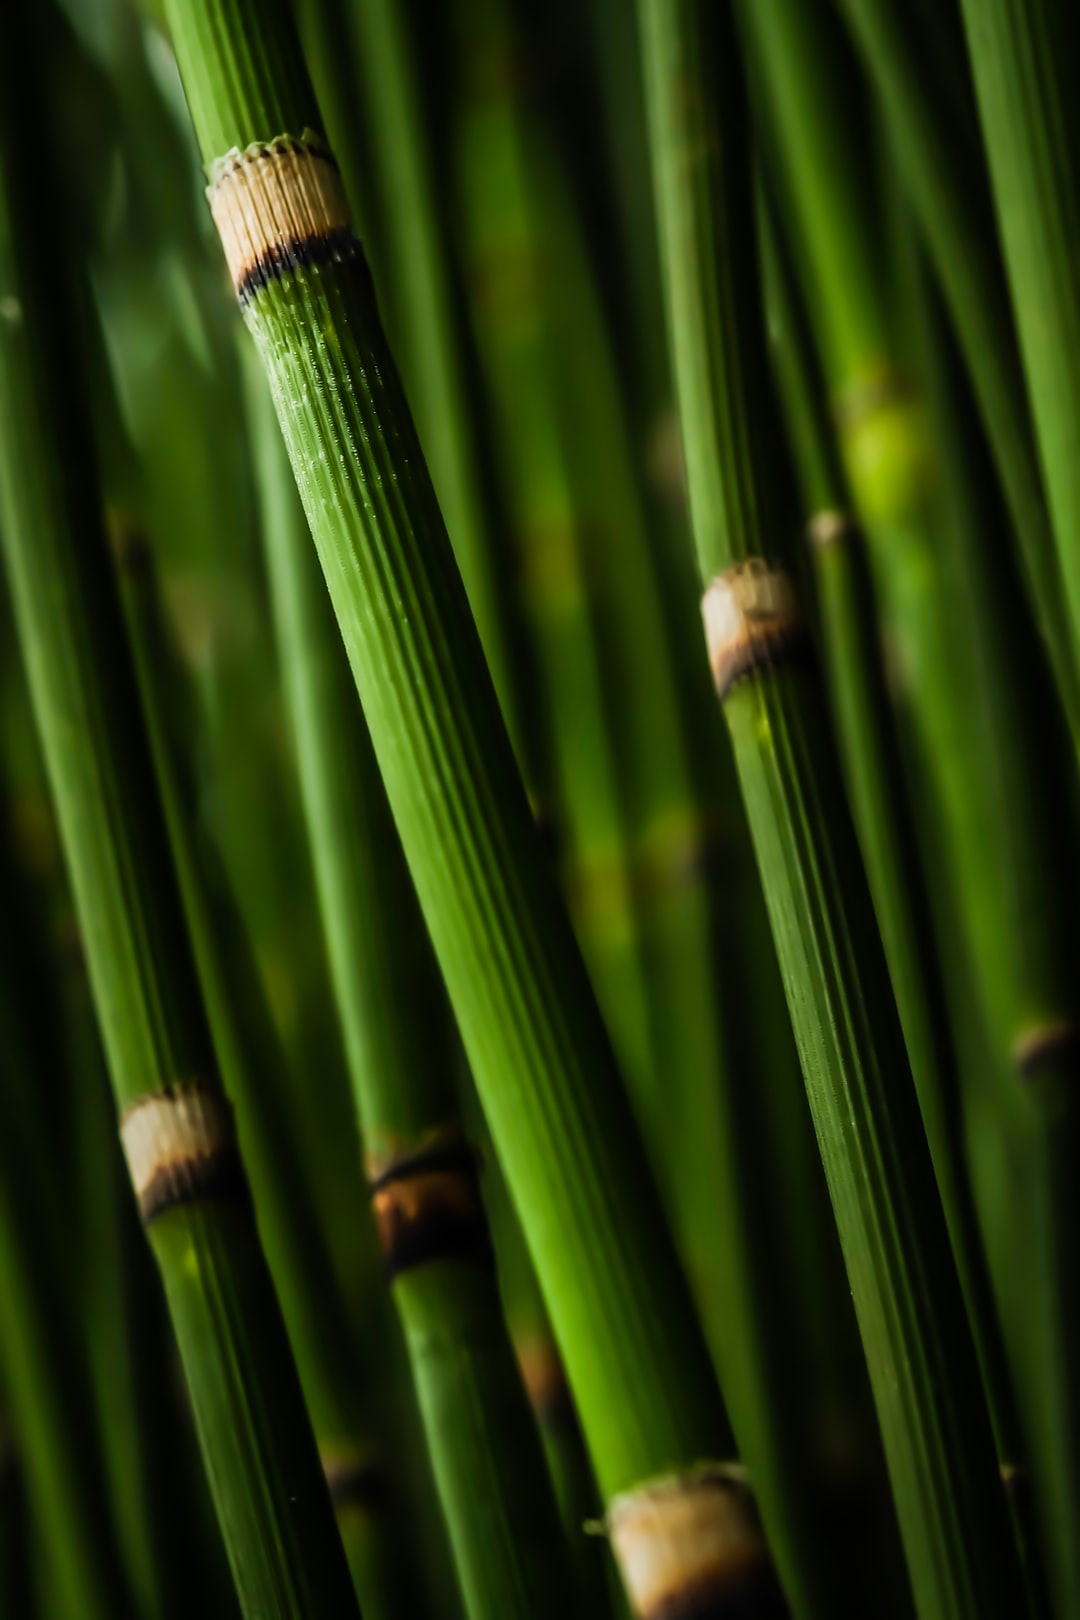 Thick bamboo stems